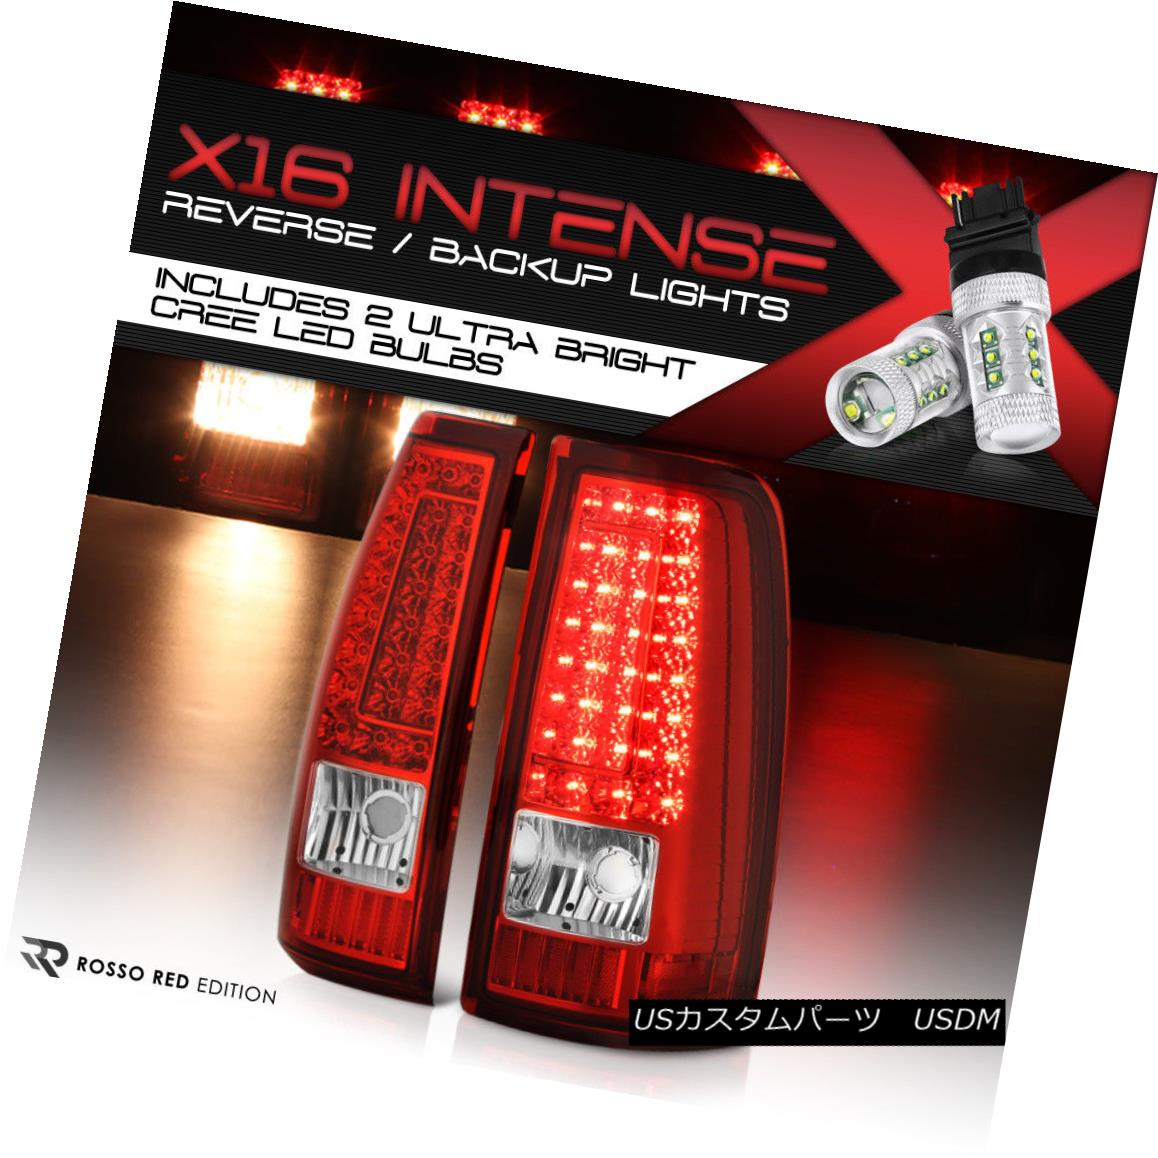 テールライト CREE LED REVERSE [FACTORY RED] 2003-2006 Chevy Silverado LEFT RIGHT Tail Lamps CREE LED REVERSE [FACTORY RED] 2003-2006 Chevy Silverado LEFT RIGHTテールランプ